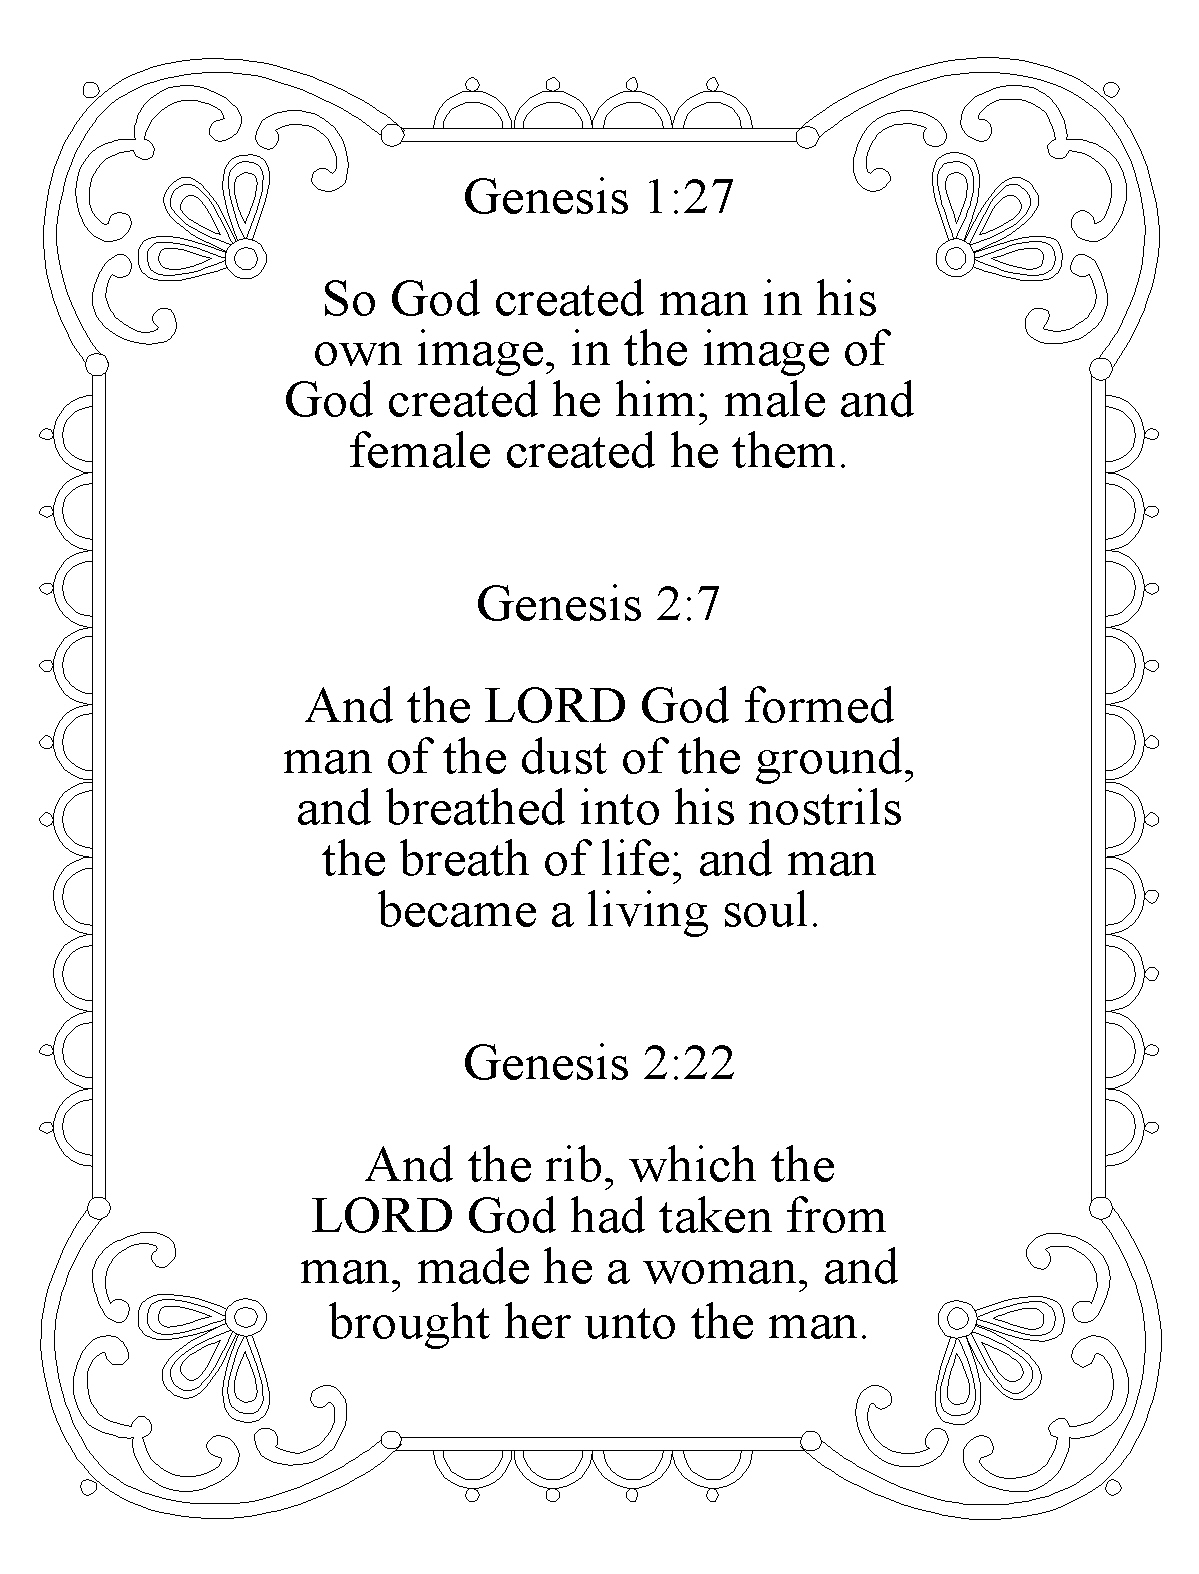 Christmas poems for church programs - Childrens Church Memory Verse Goals Genesis